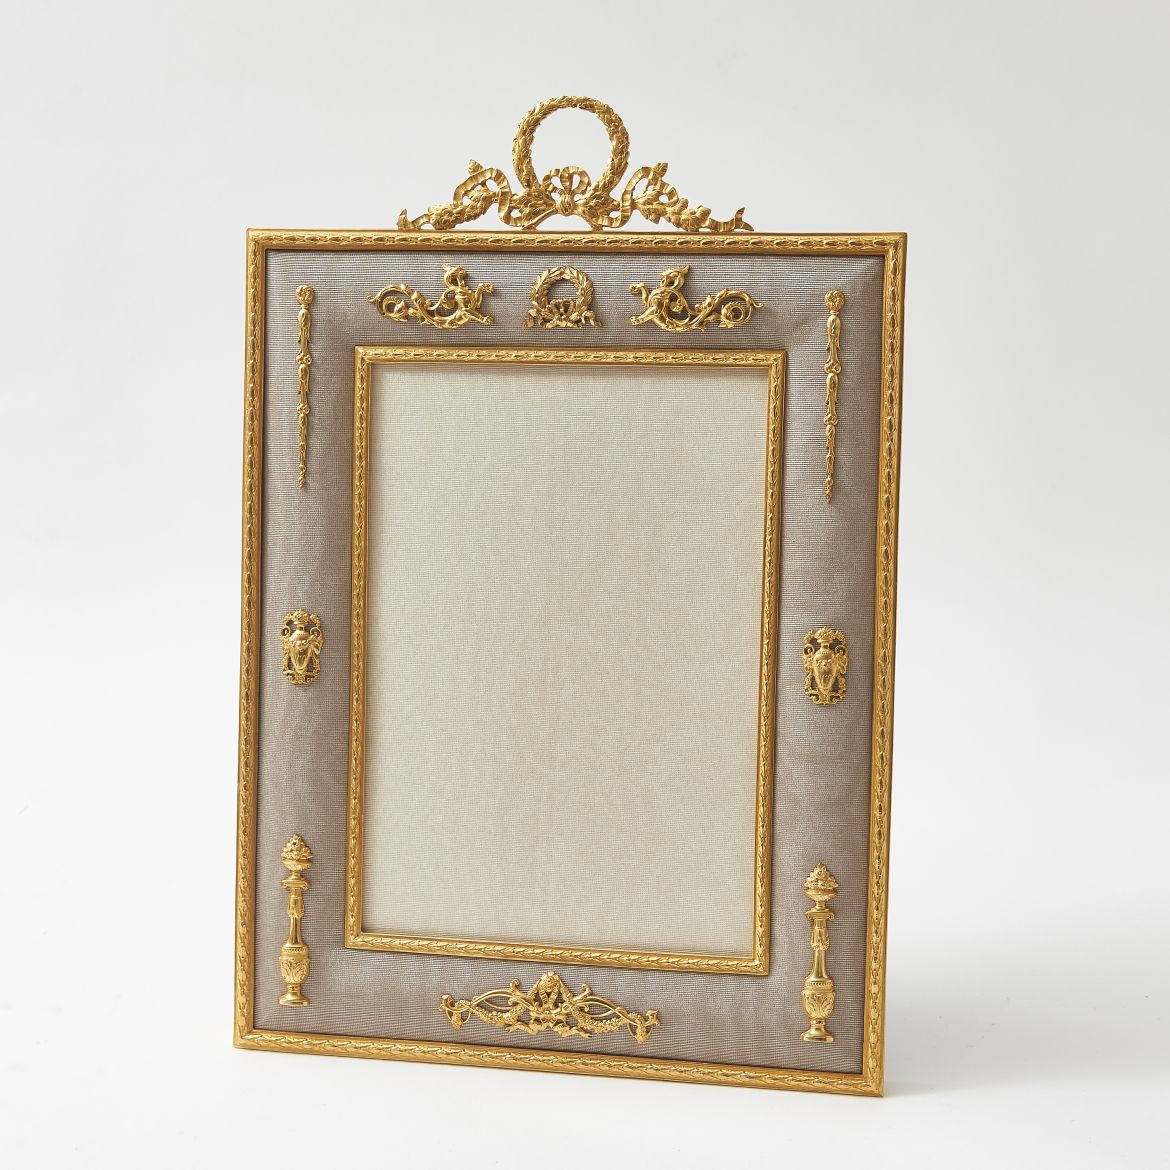 Photo Frame With Cushion Border